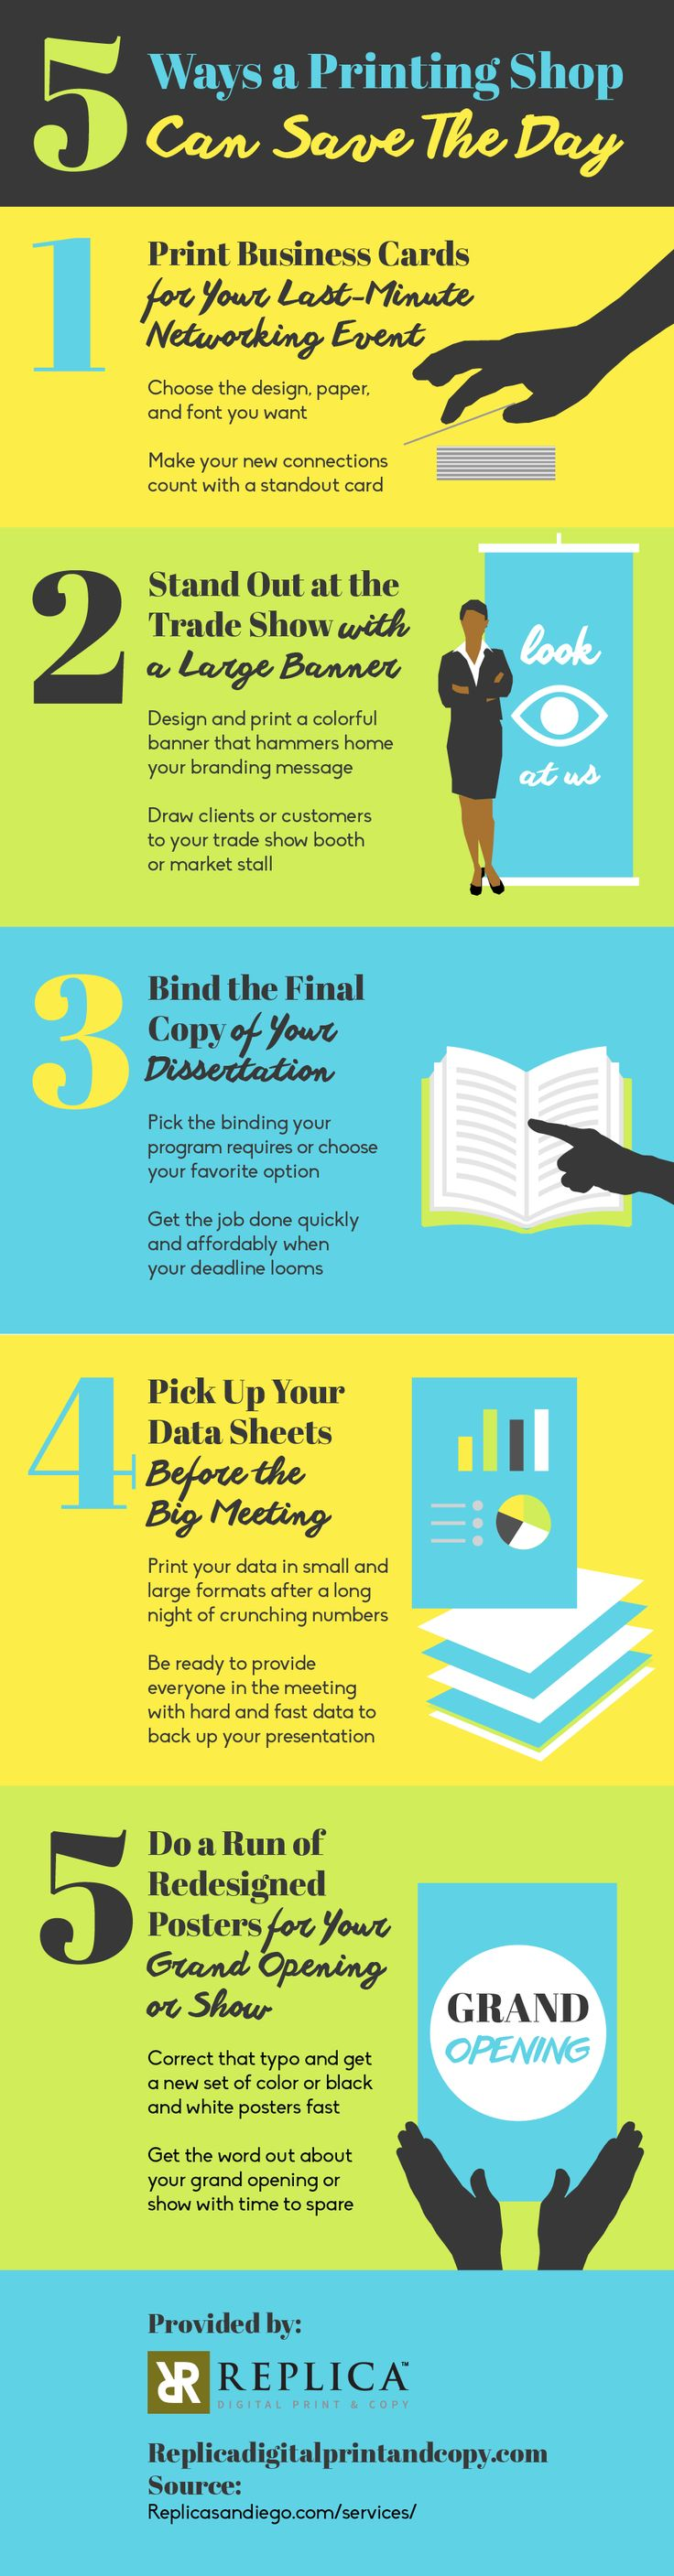 Printing and binding your dissertation is an aspect you shouldn't overlook, especially with your deadline coming up! Find out how the printing shop can help by looking at this infographic on common services.